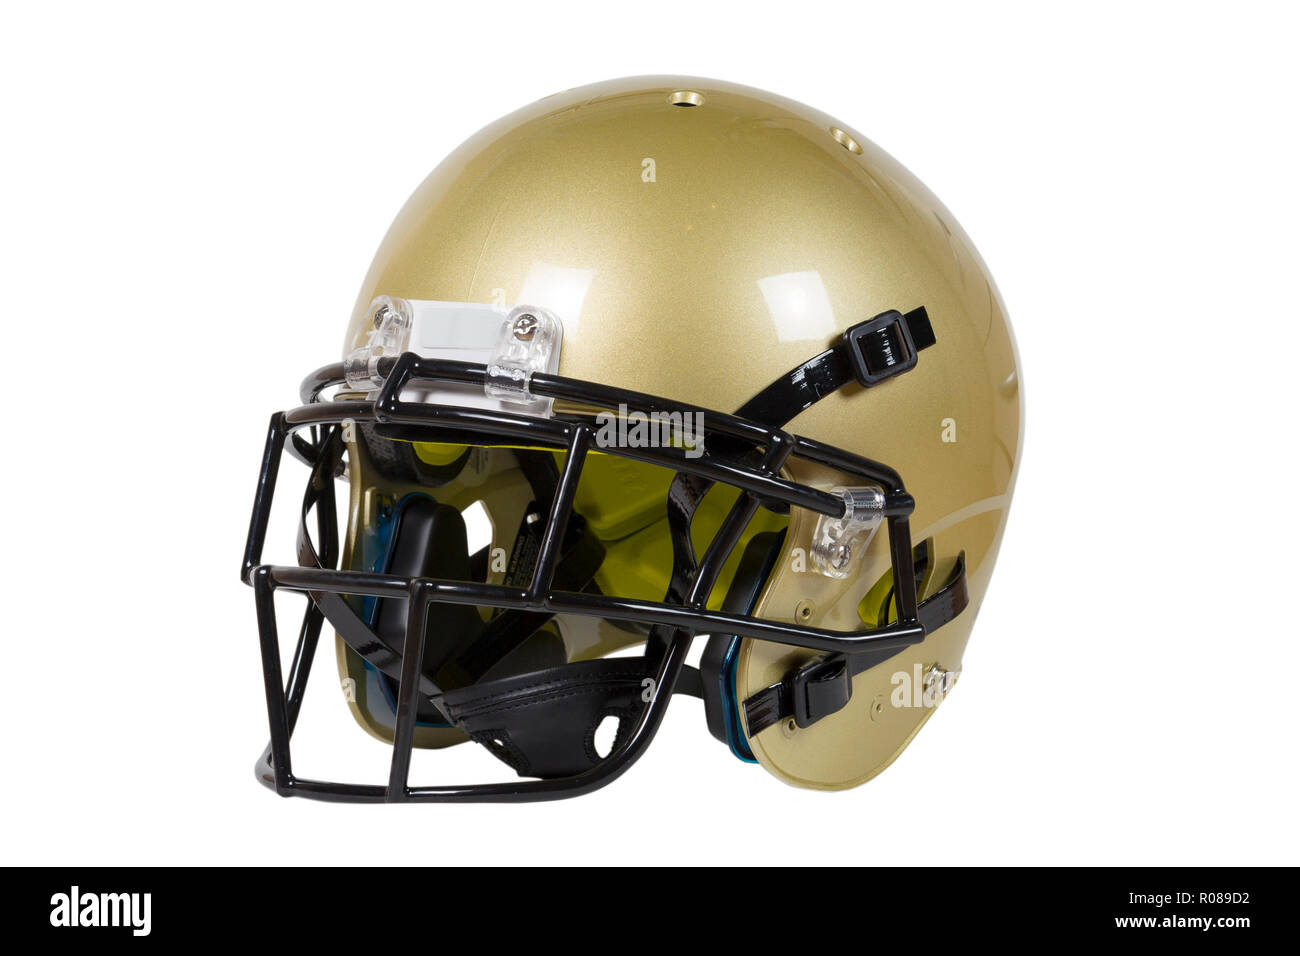 718b5a72 American football helmet isolated on white background with clipping path  Vegas Gold color - Stock Image